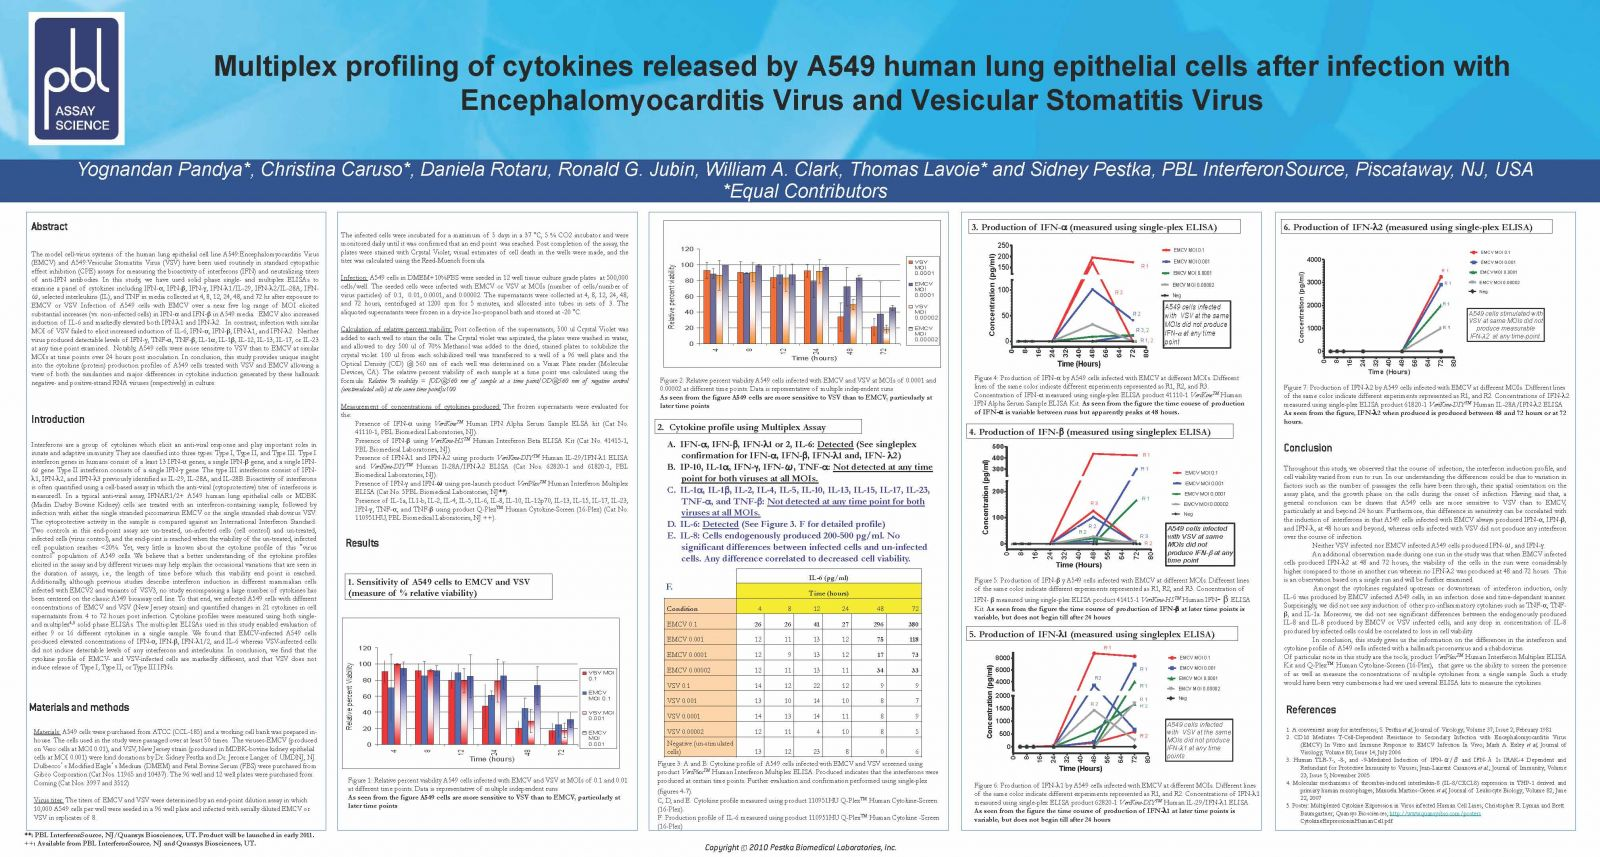 Multiplex Profiling of Cytokines released by A549